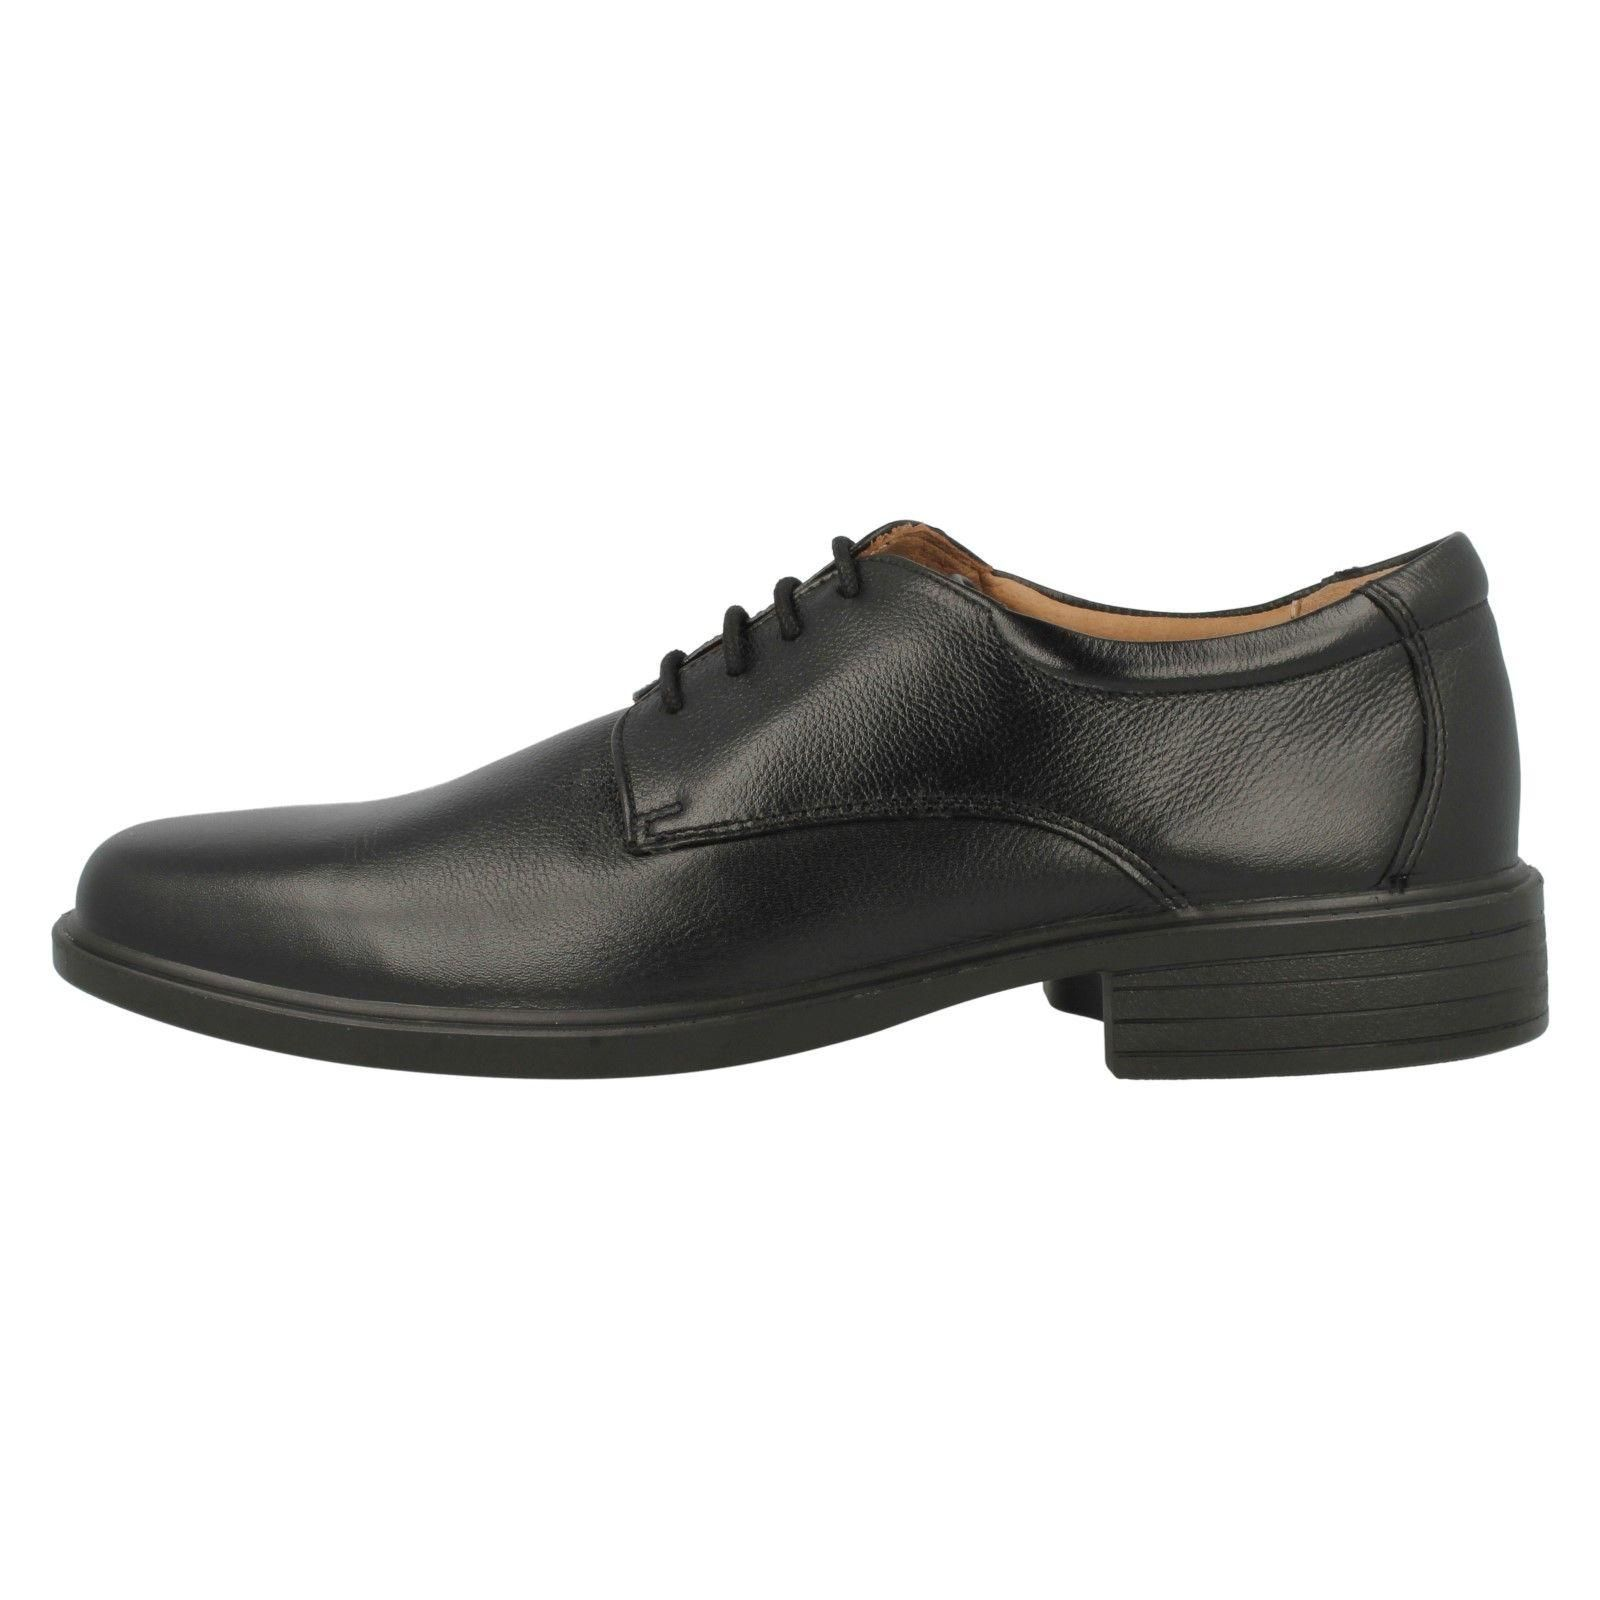 Uomo Schuhes Padders Smart Lace Up Schuhes Uomo Andrew 7f4631